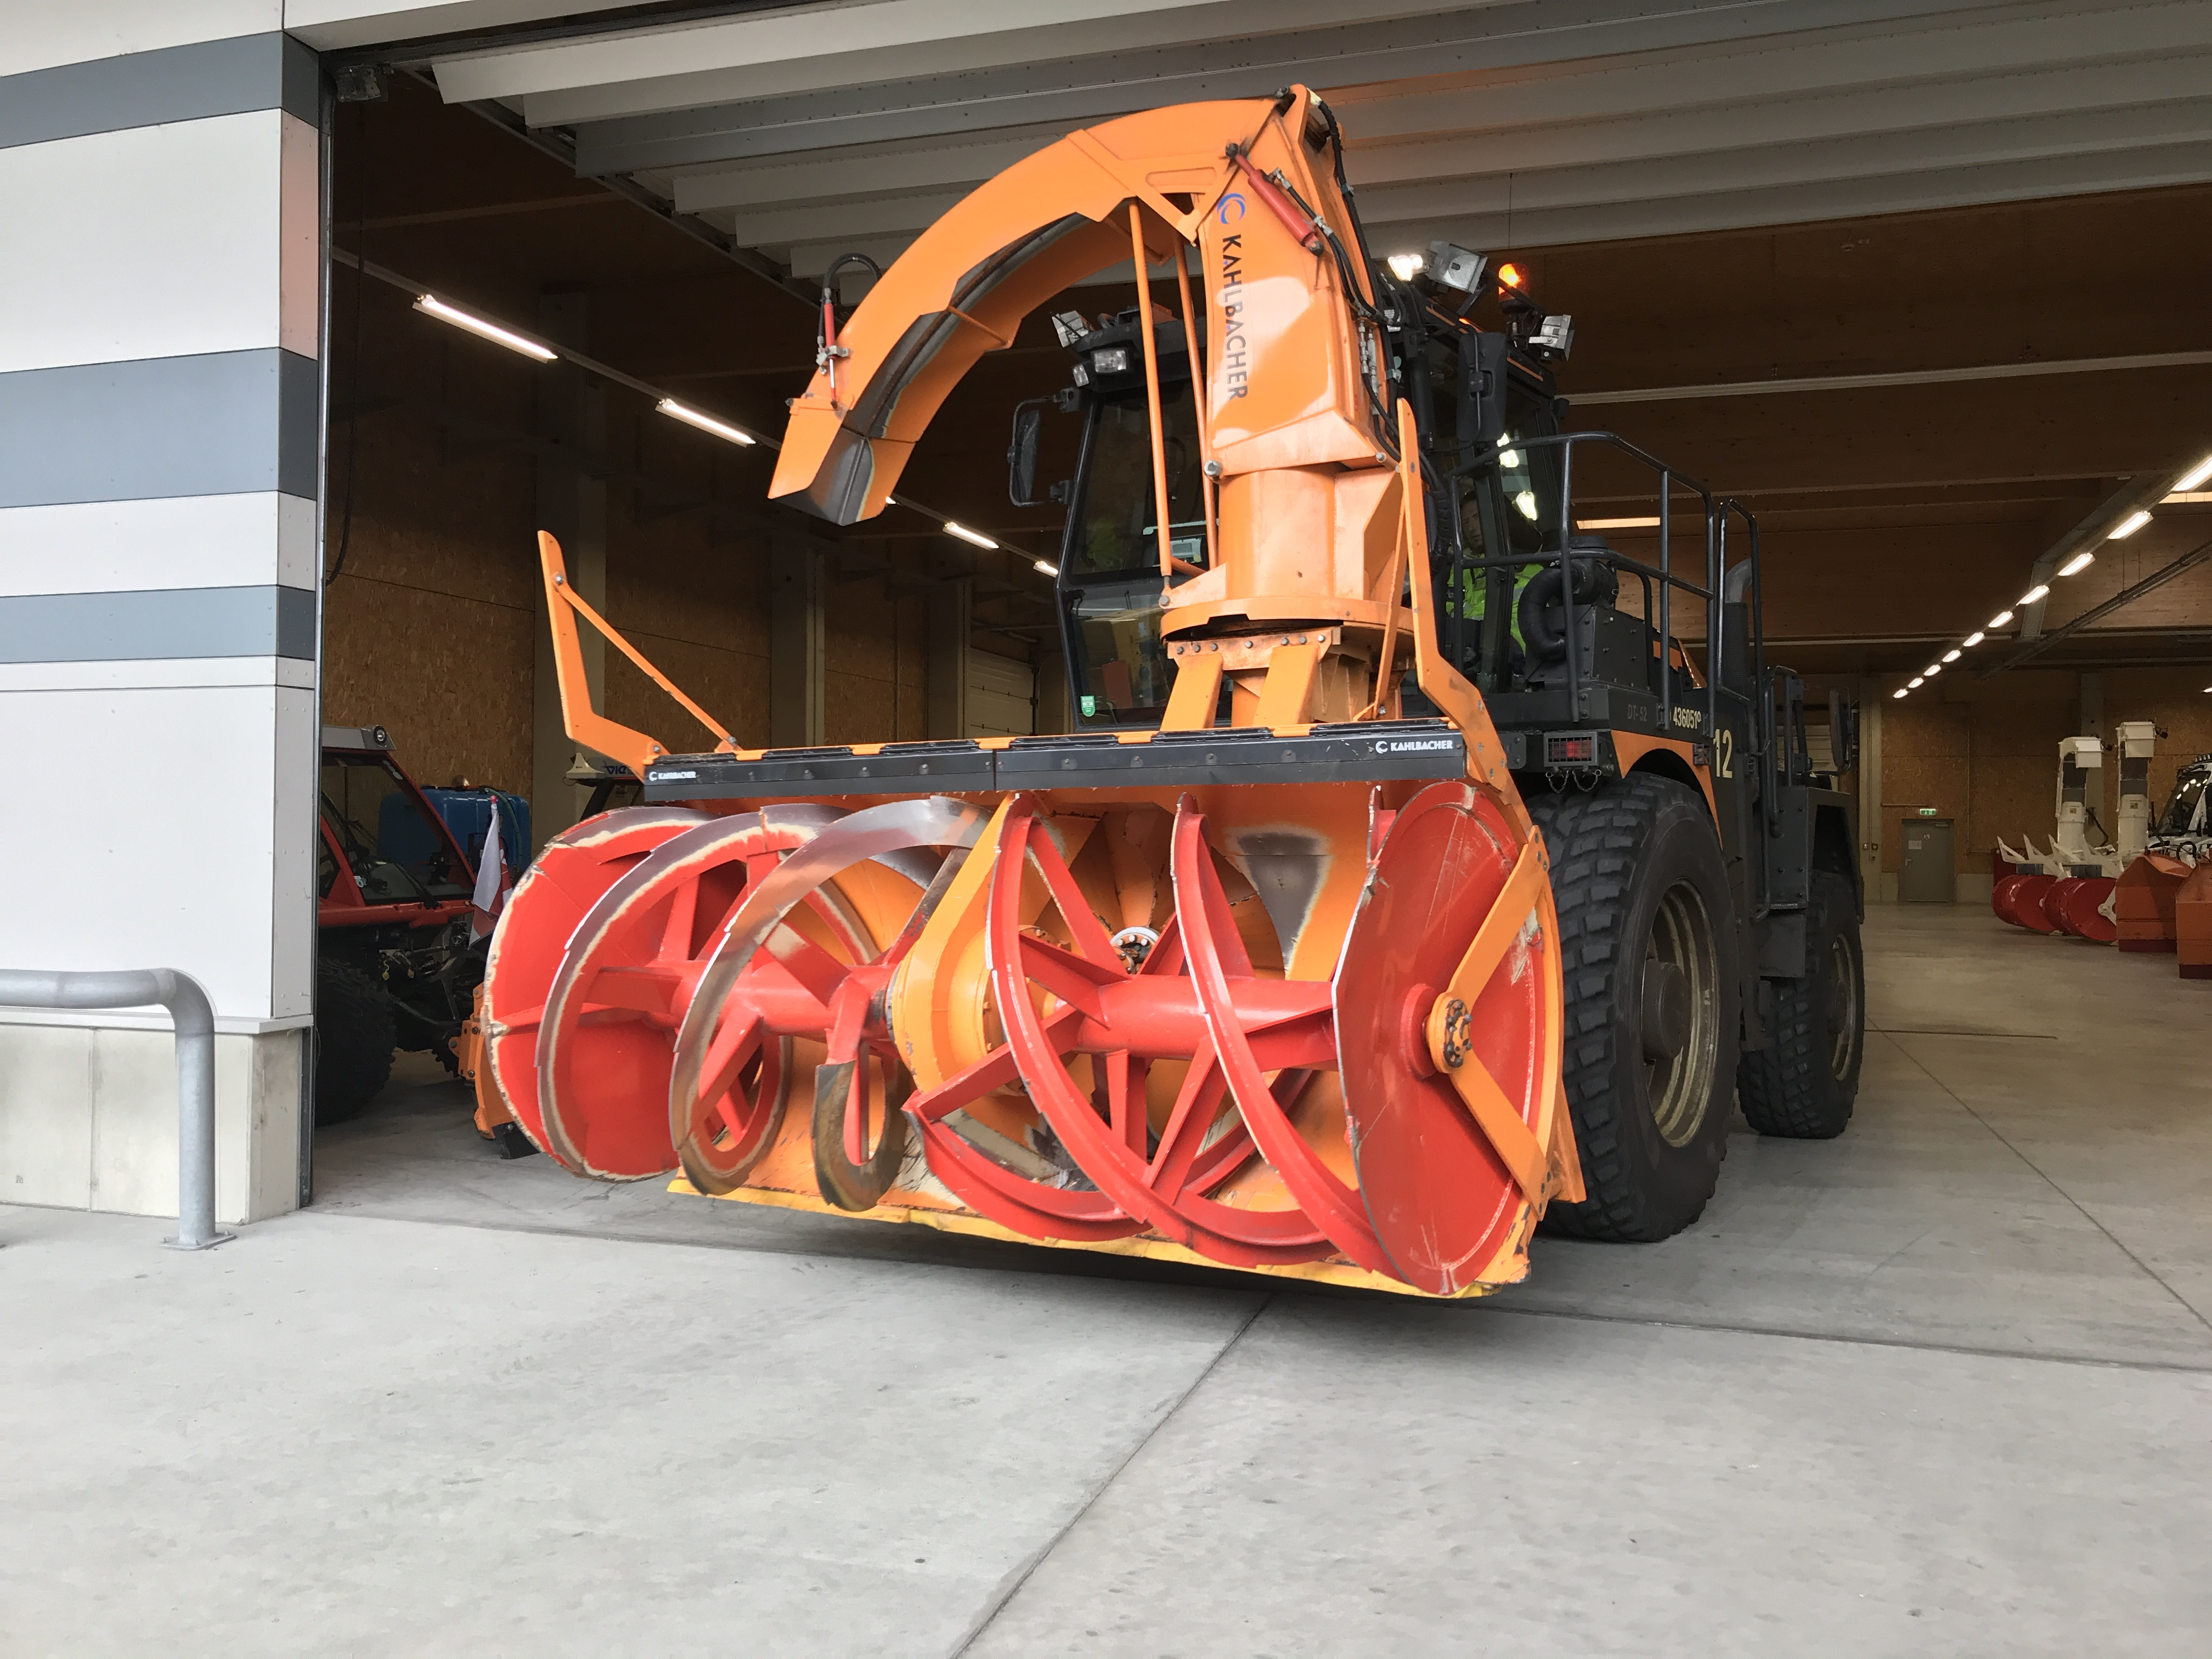 fearsome looking snow clearing machine at Vienna airport